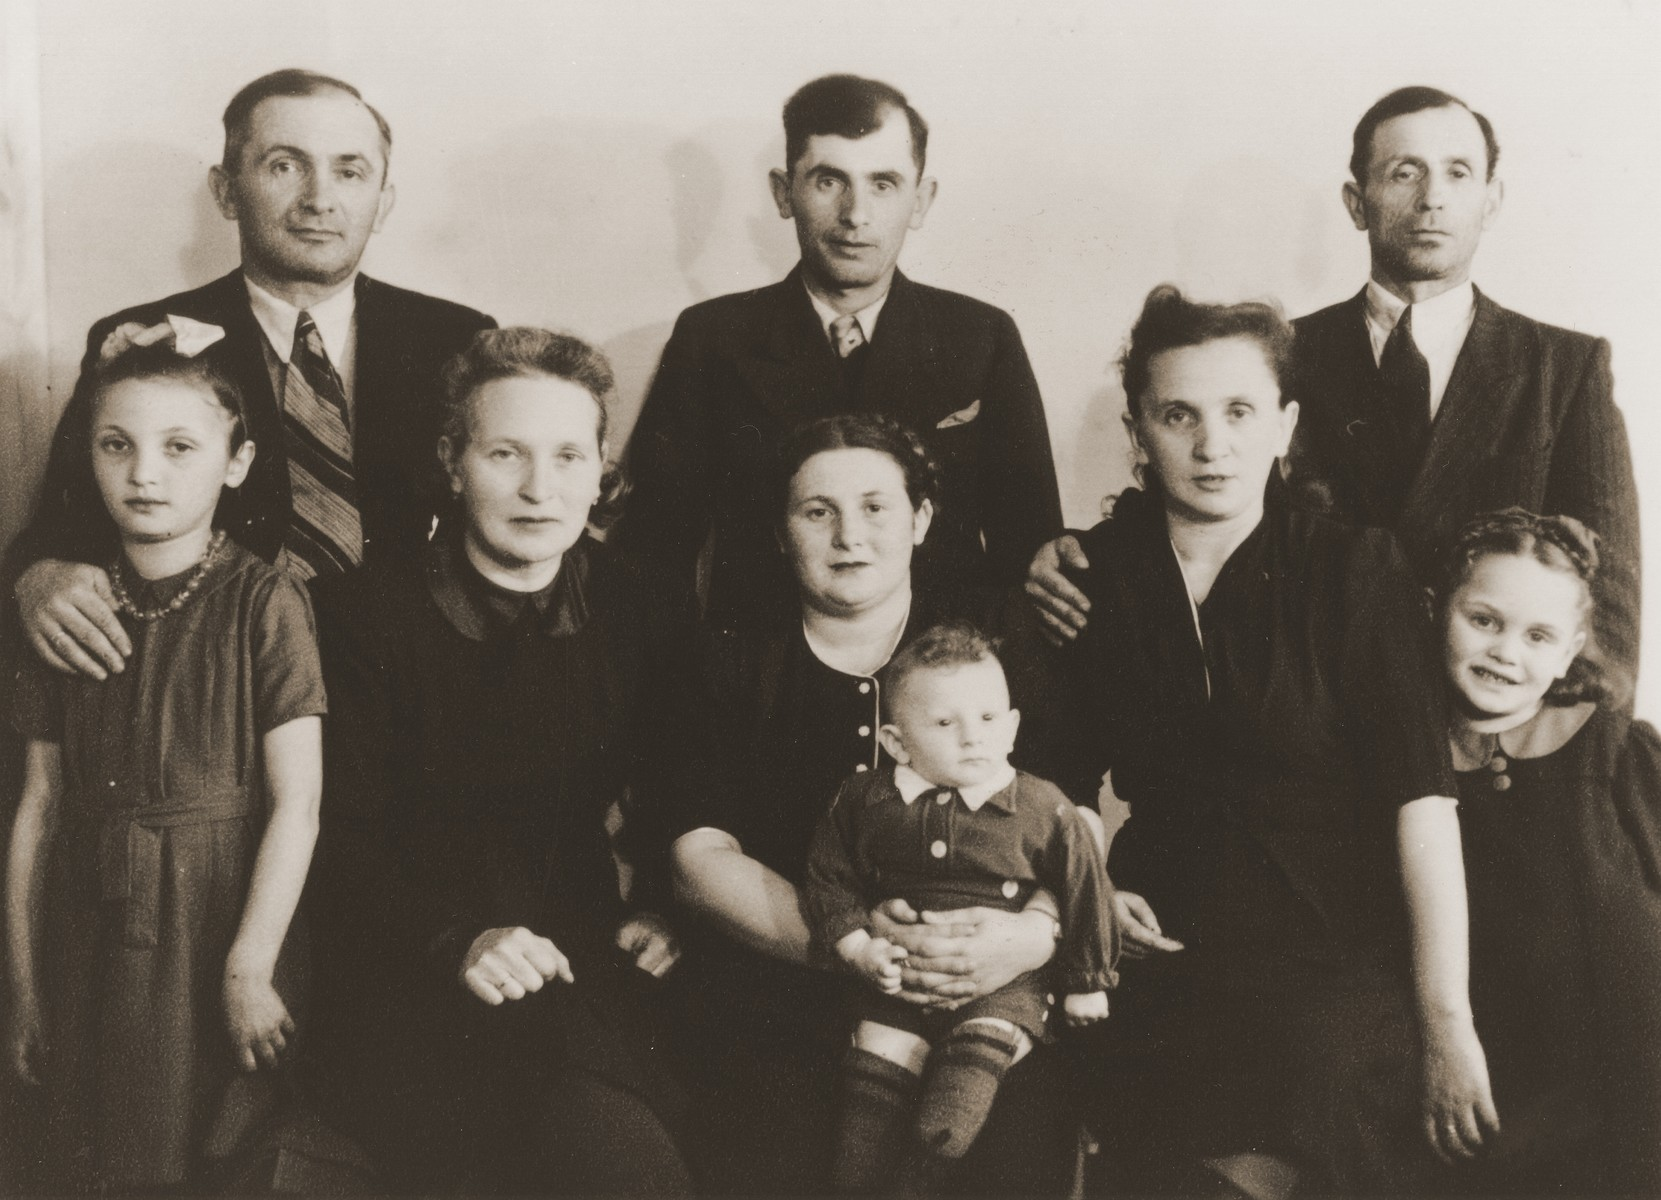 Group portrait of members of the Liekach family in Germany after the war.  Pictured are Moishe and Eta Leikach; Genia and Henry Leikach; Hinda Leikach; Mendel Leikach; Chaim and Rivka Lindenblatt; and Shulamis Leikach.